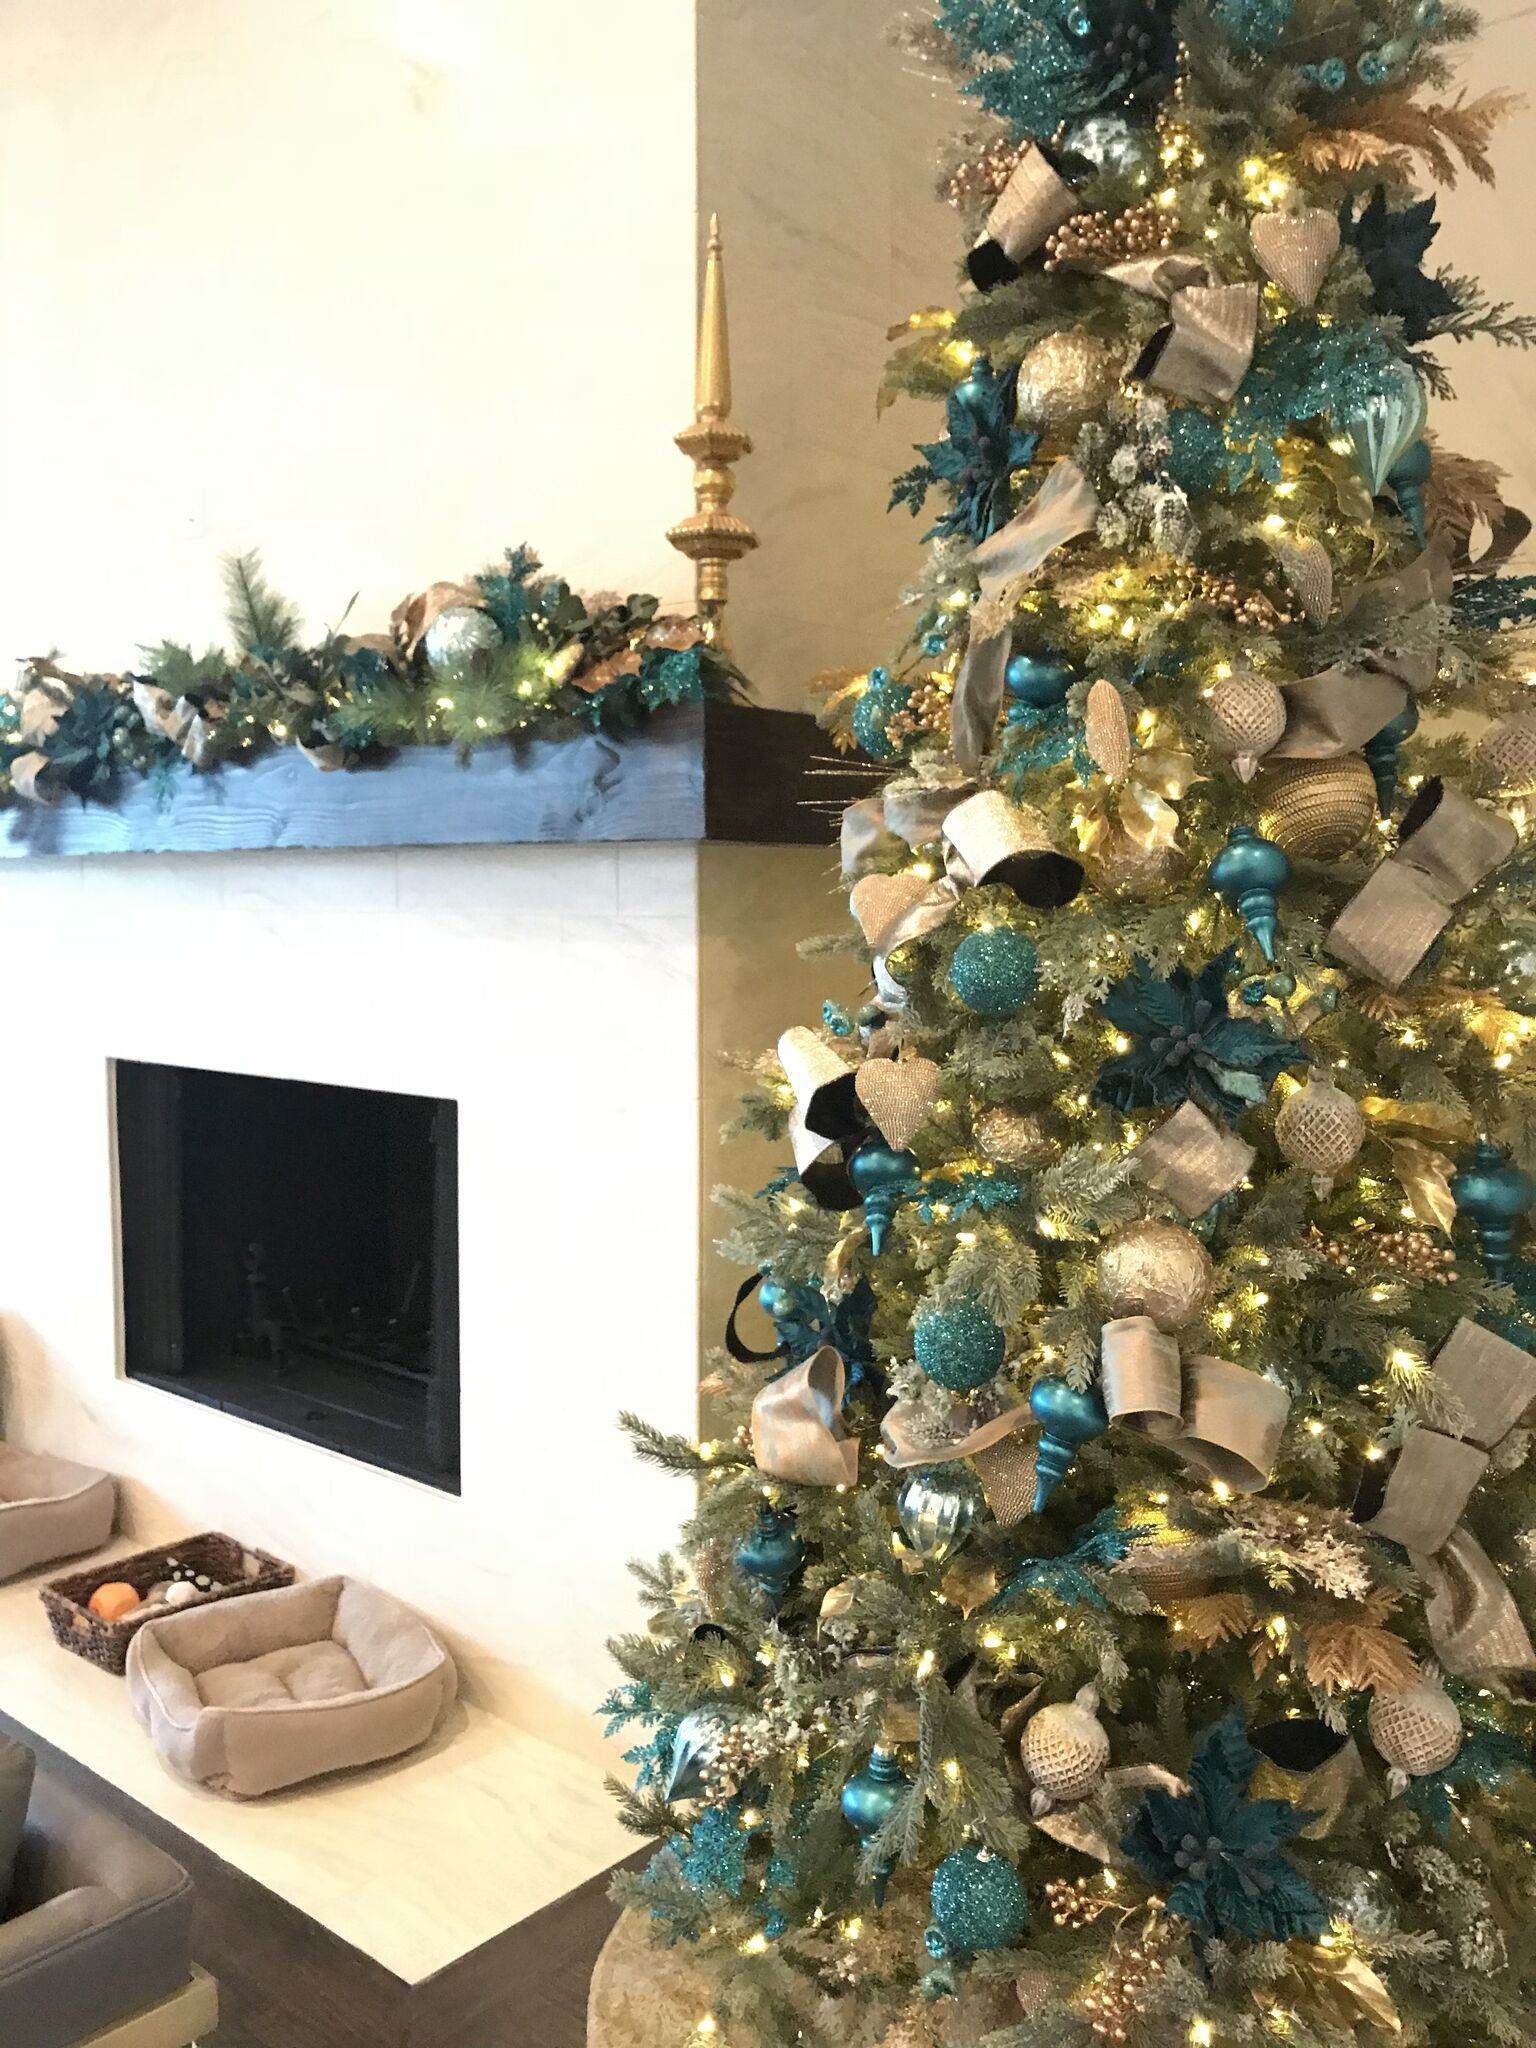 Christmas Decorating Services Are One Of The Many Interior Design Services We Offer At Baker Design G Christmas Tree Themes Holiday Decor Christmas Decorations